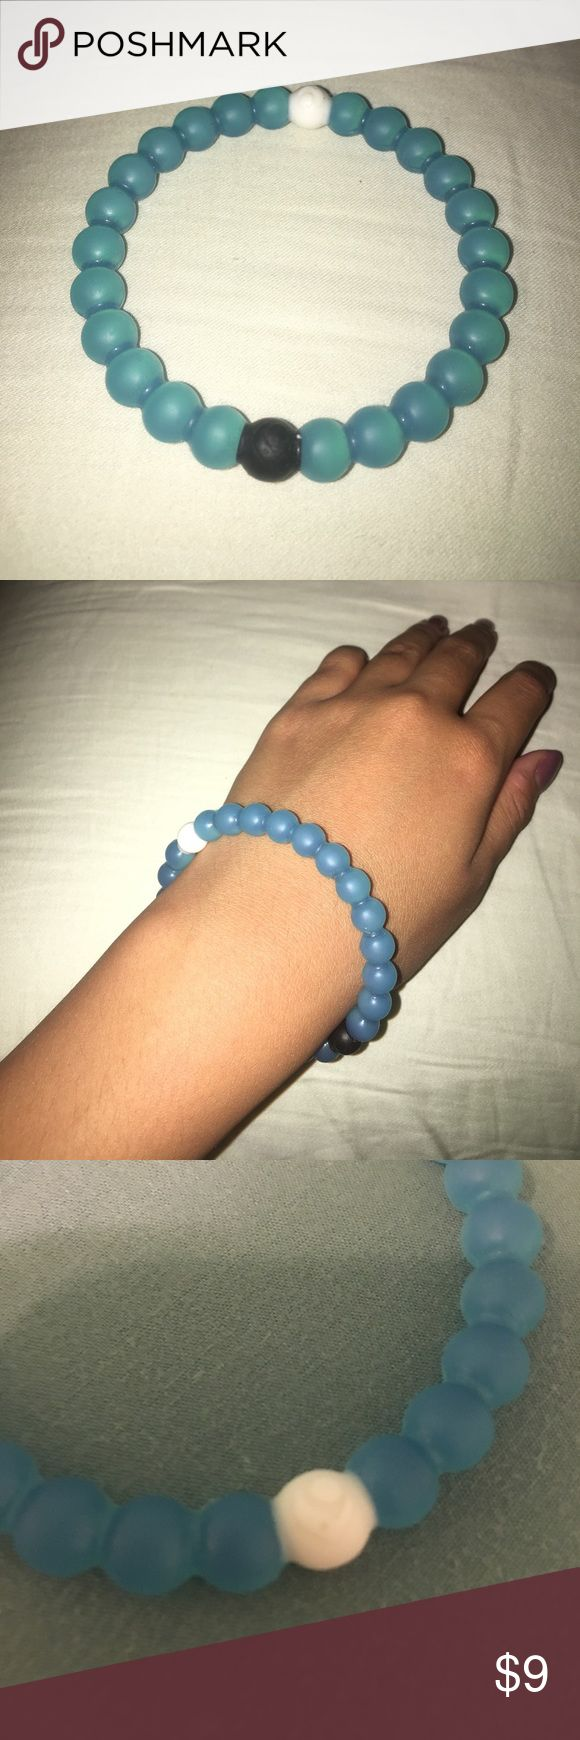 REAL Blue Lokai Bracelet when purchased, profits went to provide clean water to needy parts of the world. Lokai Jewelry Bracelets